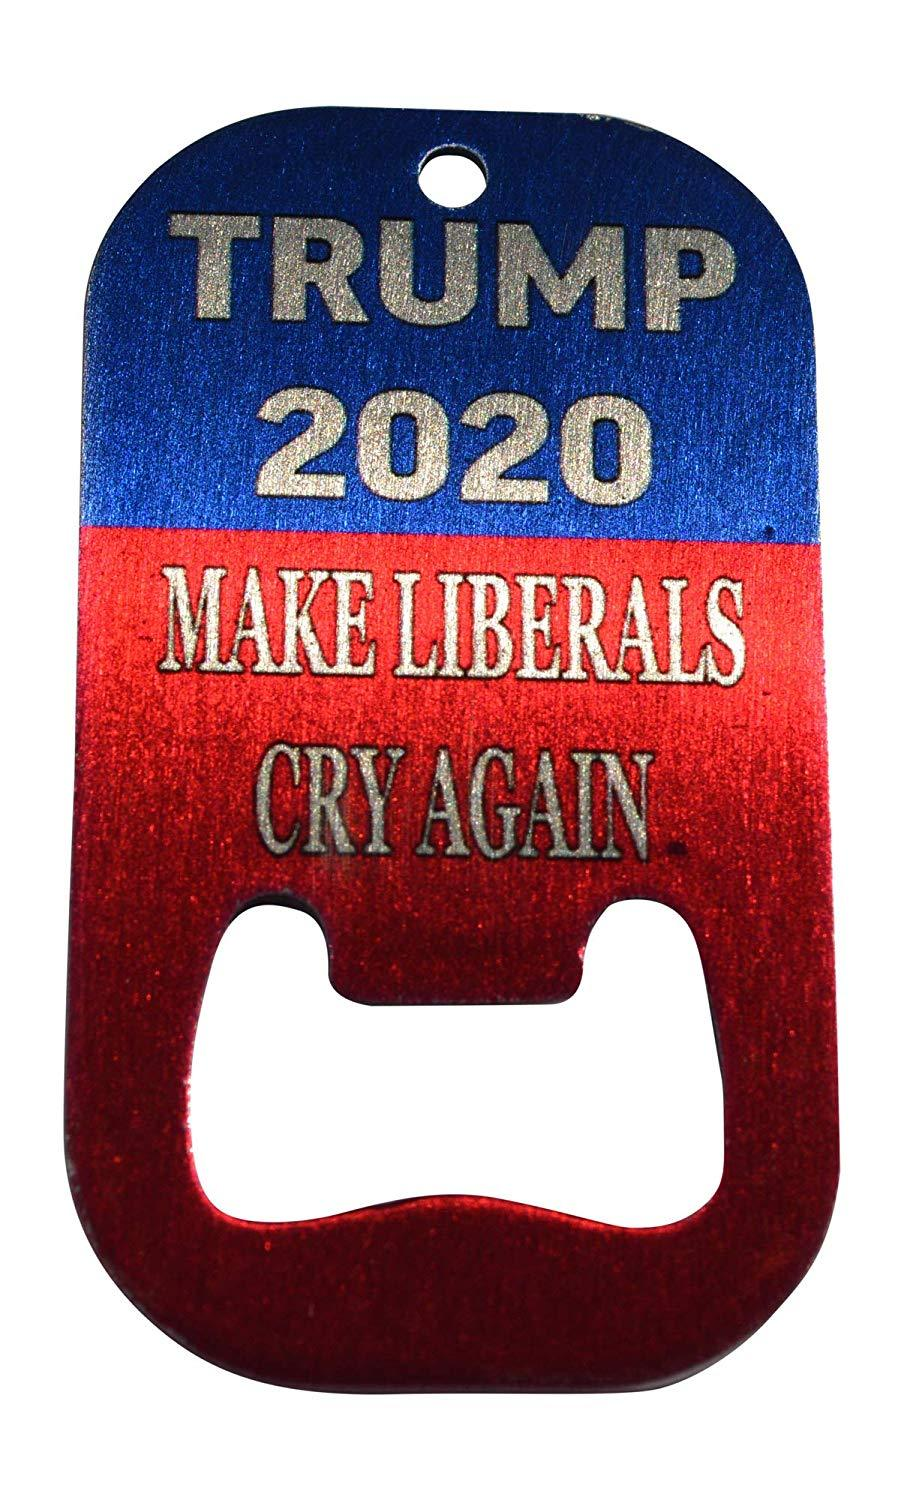 Funny Elect Donald Trump President 2020 Make Liberals Cry Again Bottle Opener Heavy Duty Stainless Steel - Bottle Openers - Rogue River Tactical  - Rogue River Tactical